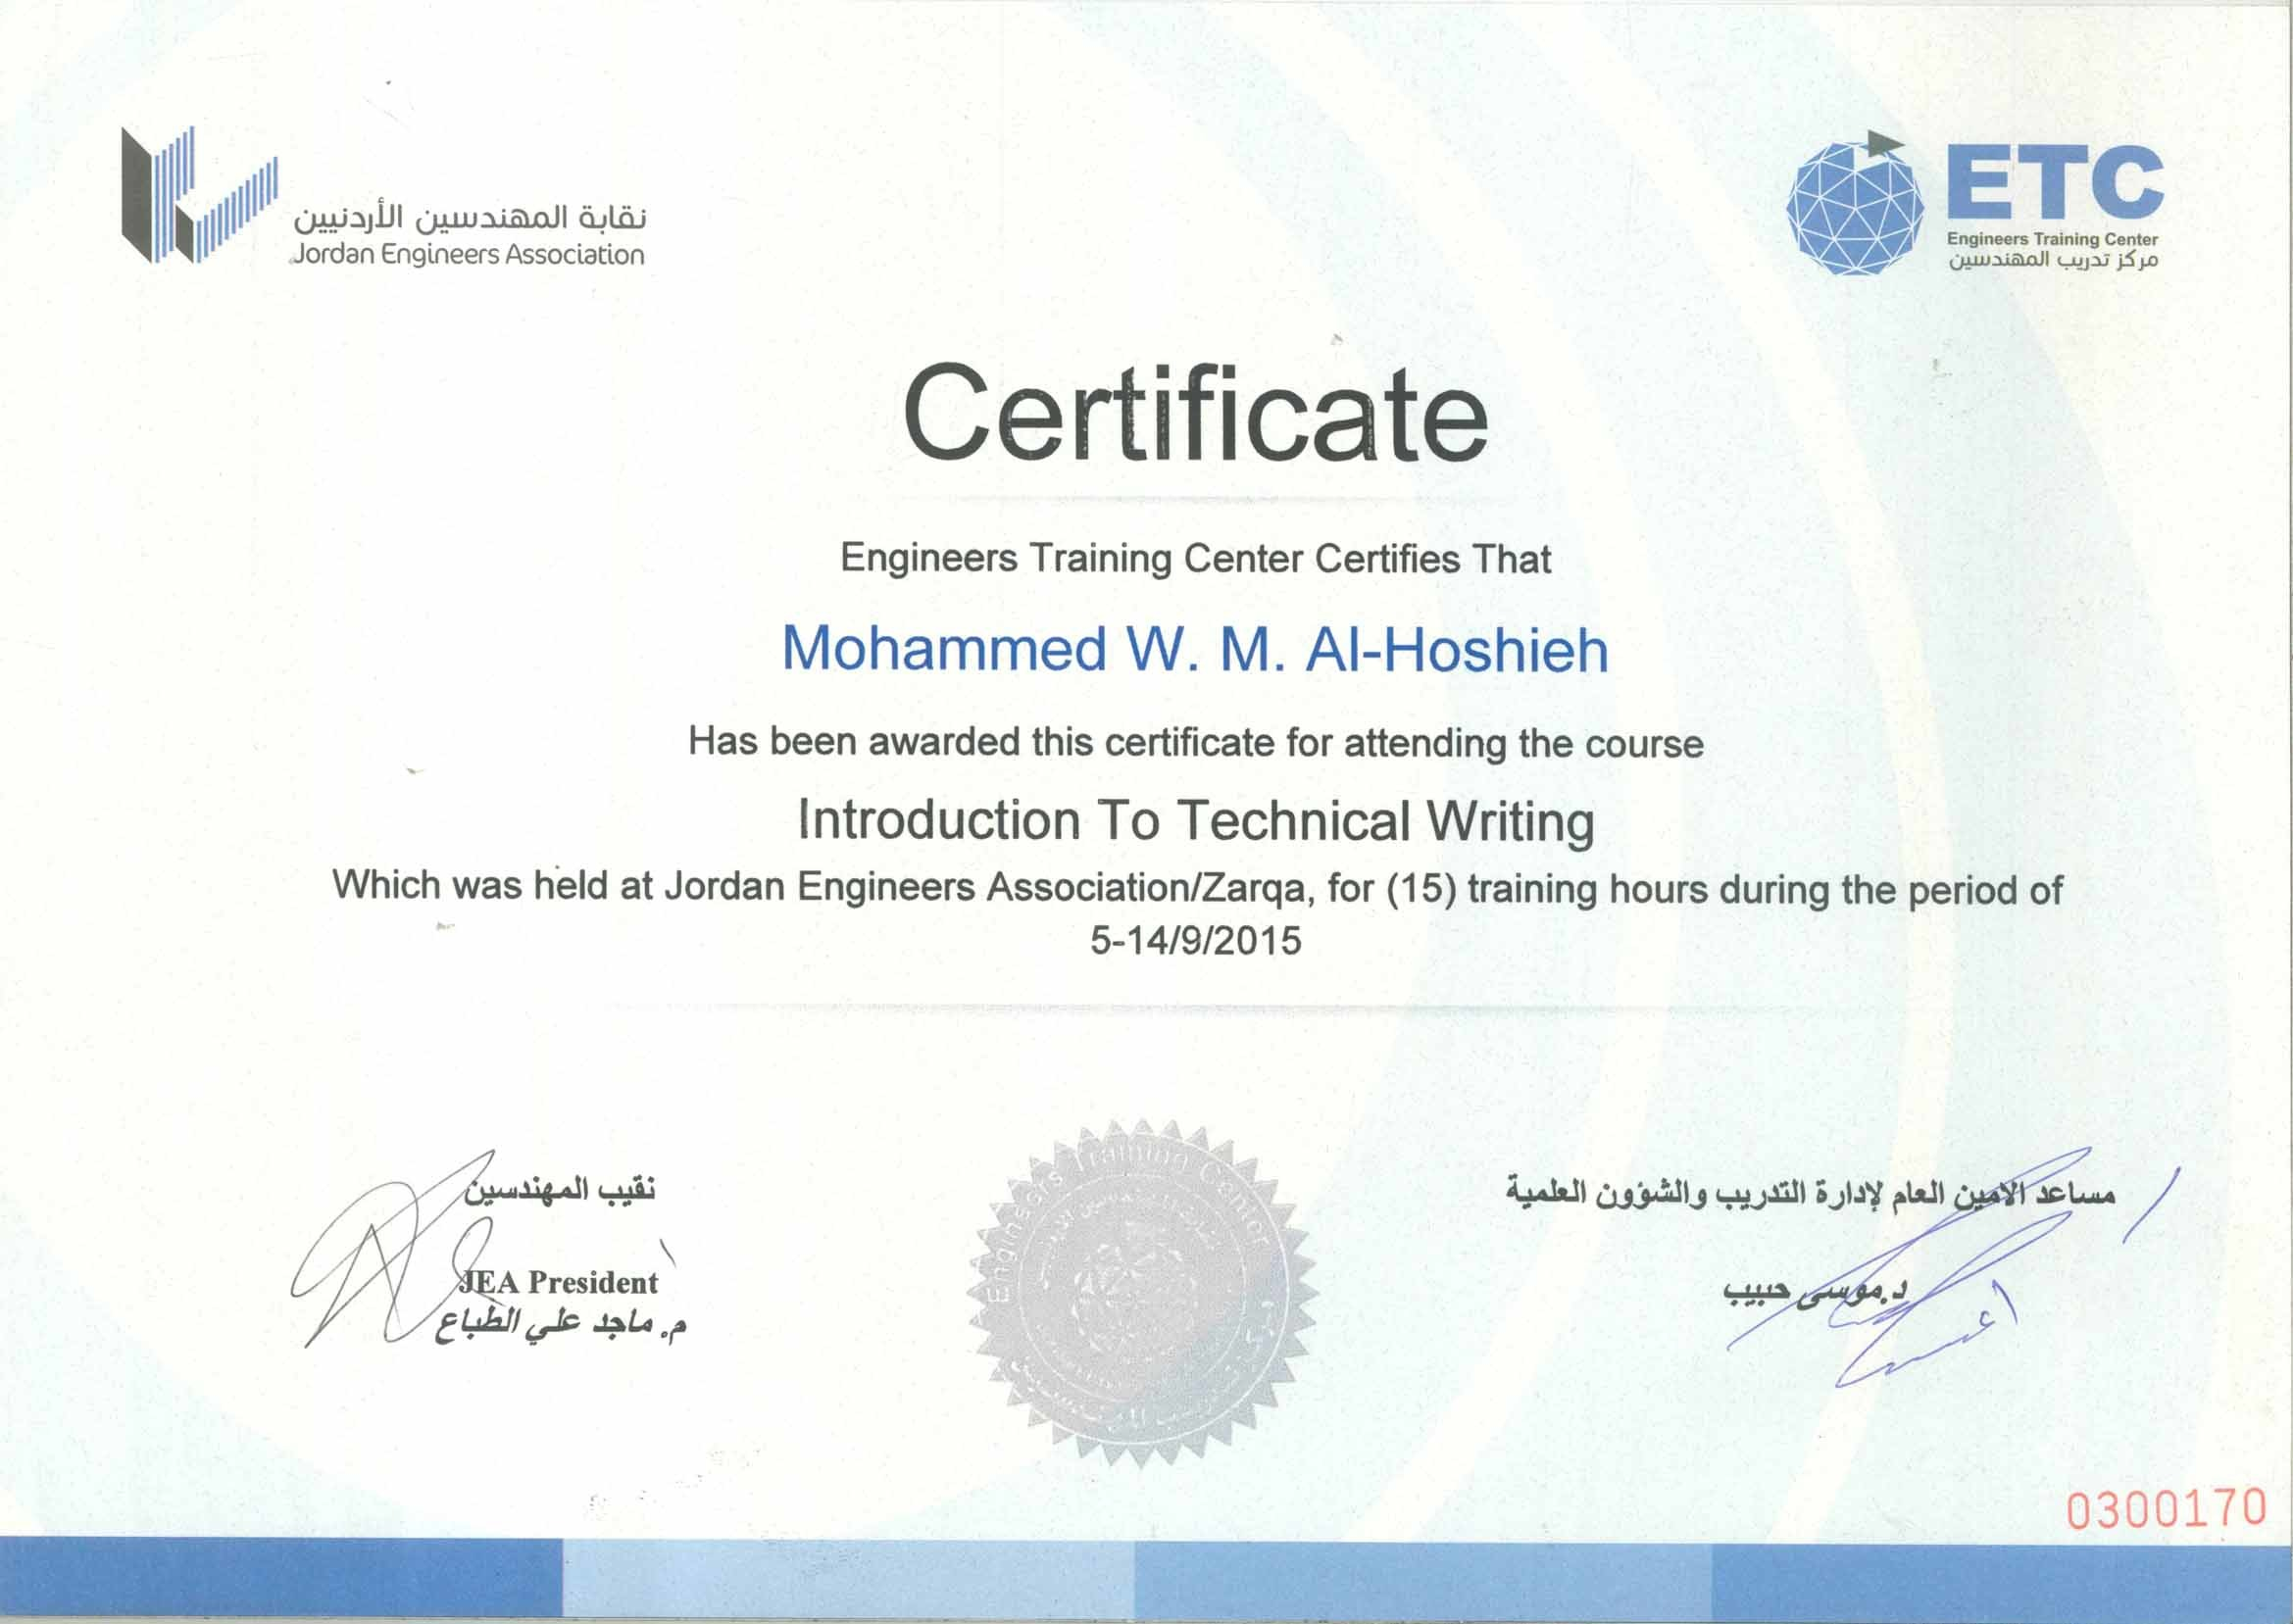 Mohammed al hoshieh bayt certificate in technical writing 15 hr from jea certificate xflitez Choice Image